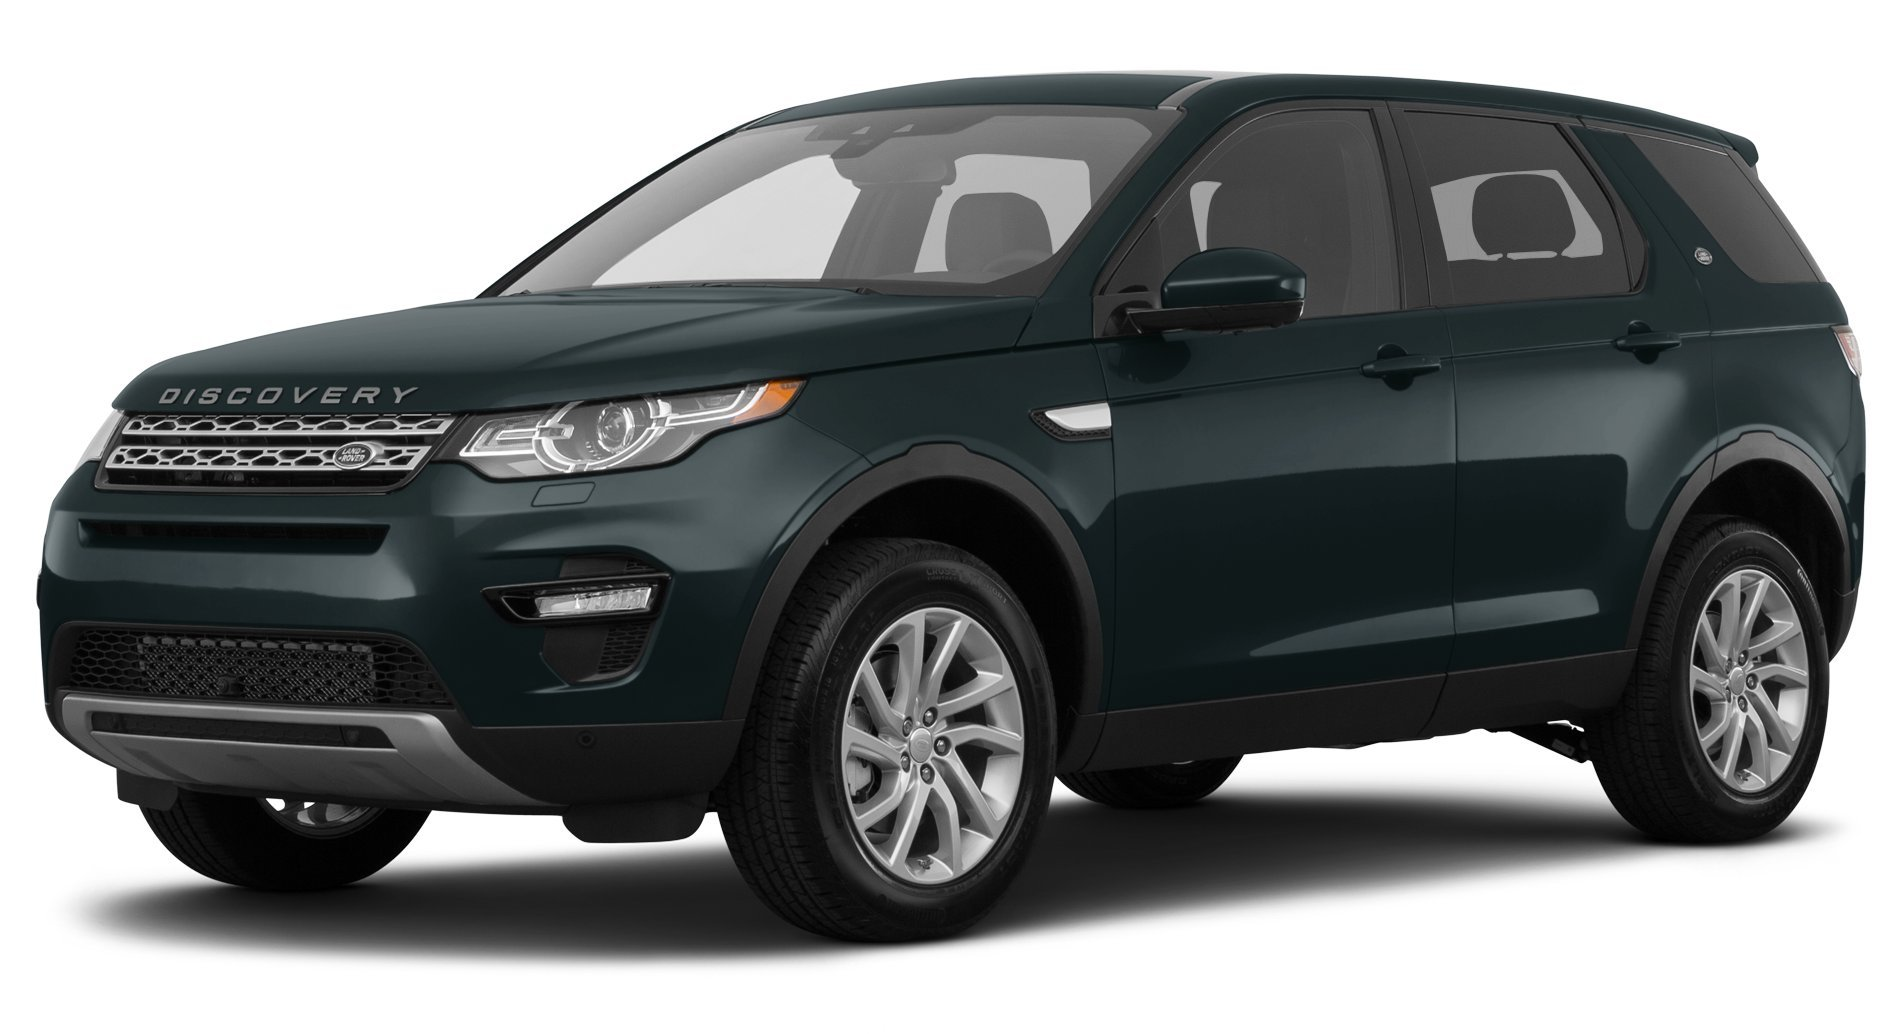 2017 land rover discovery sport reviews images and specs vehicles. Black Bedroom Furniture Sets. Home Design Ideas